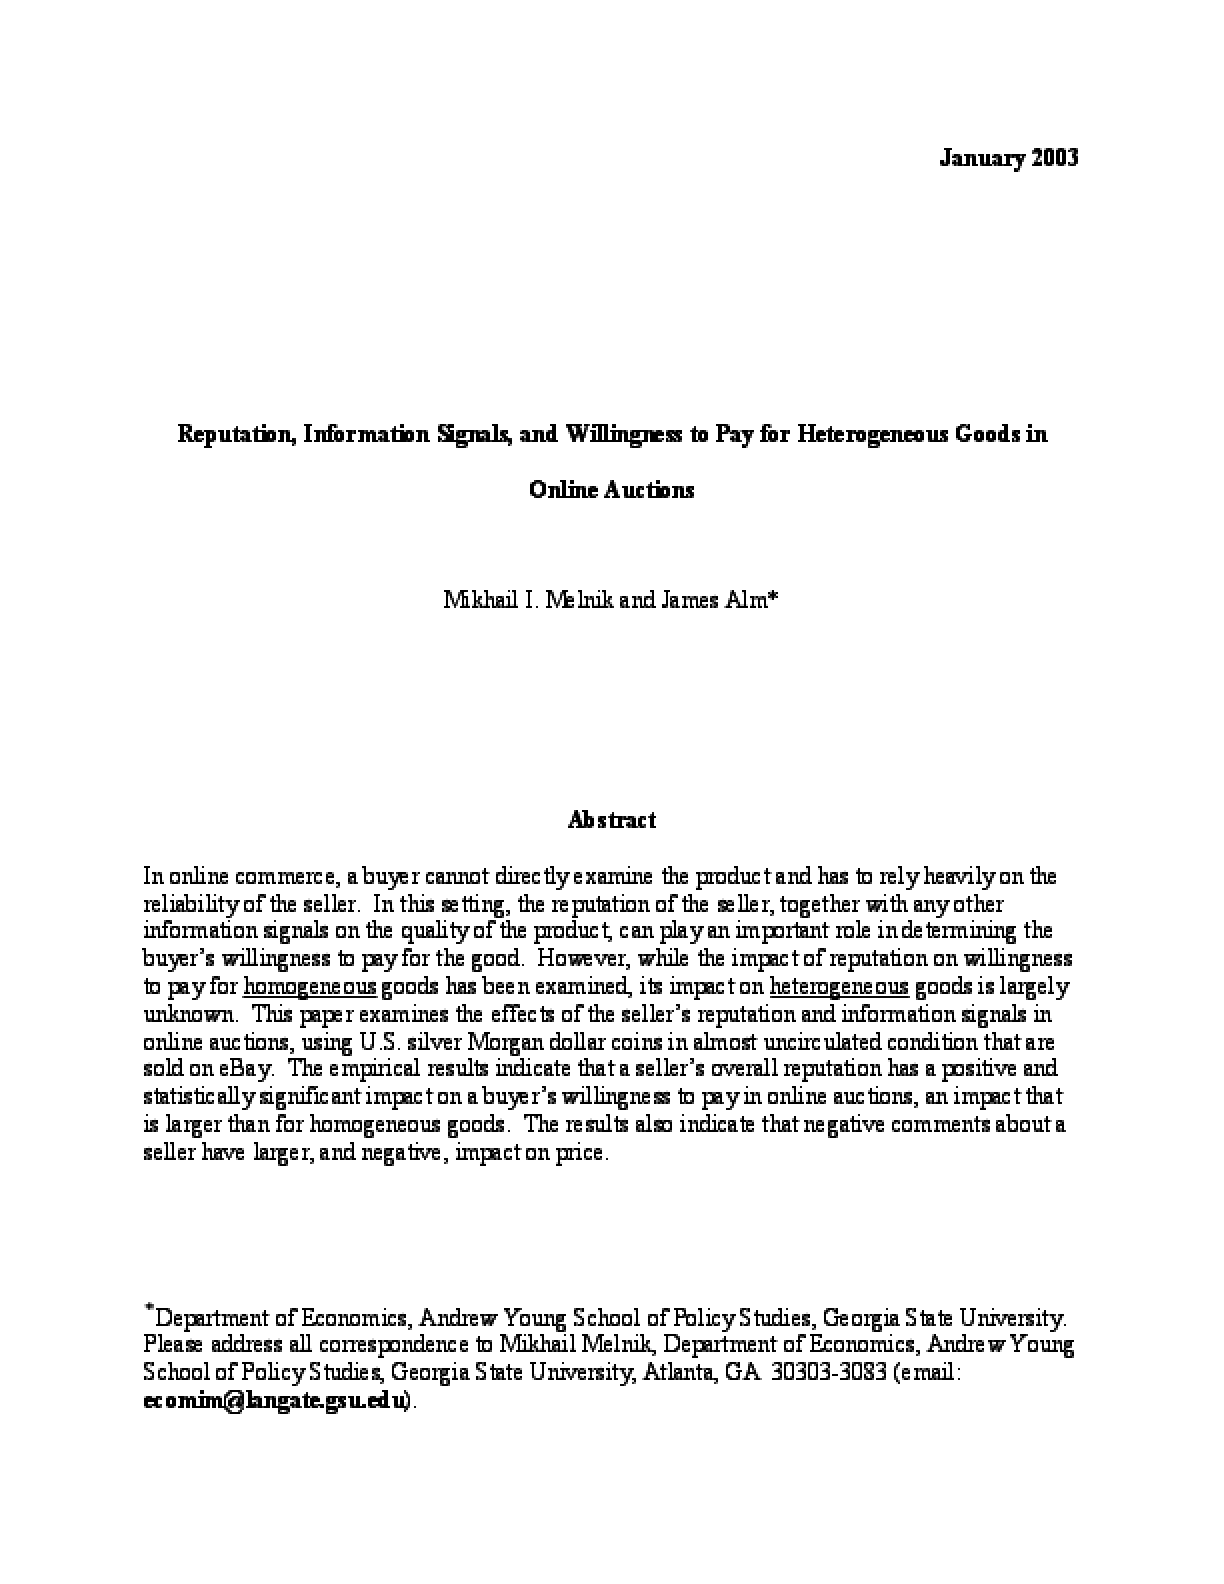 Reputation, Information Signals, and Willingness to Pay for Heterogeneous Goods in Online Auctions